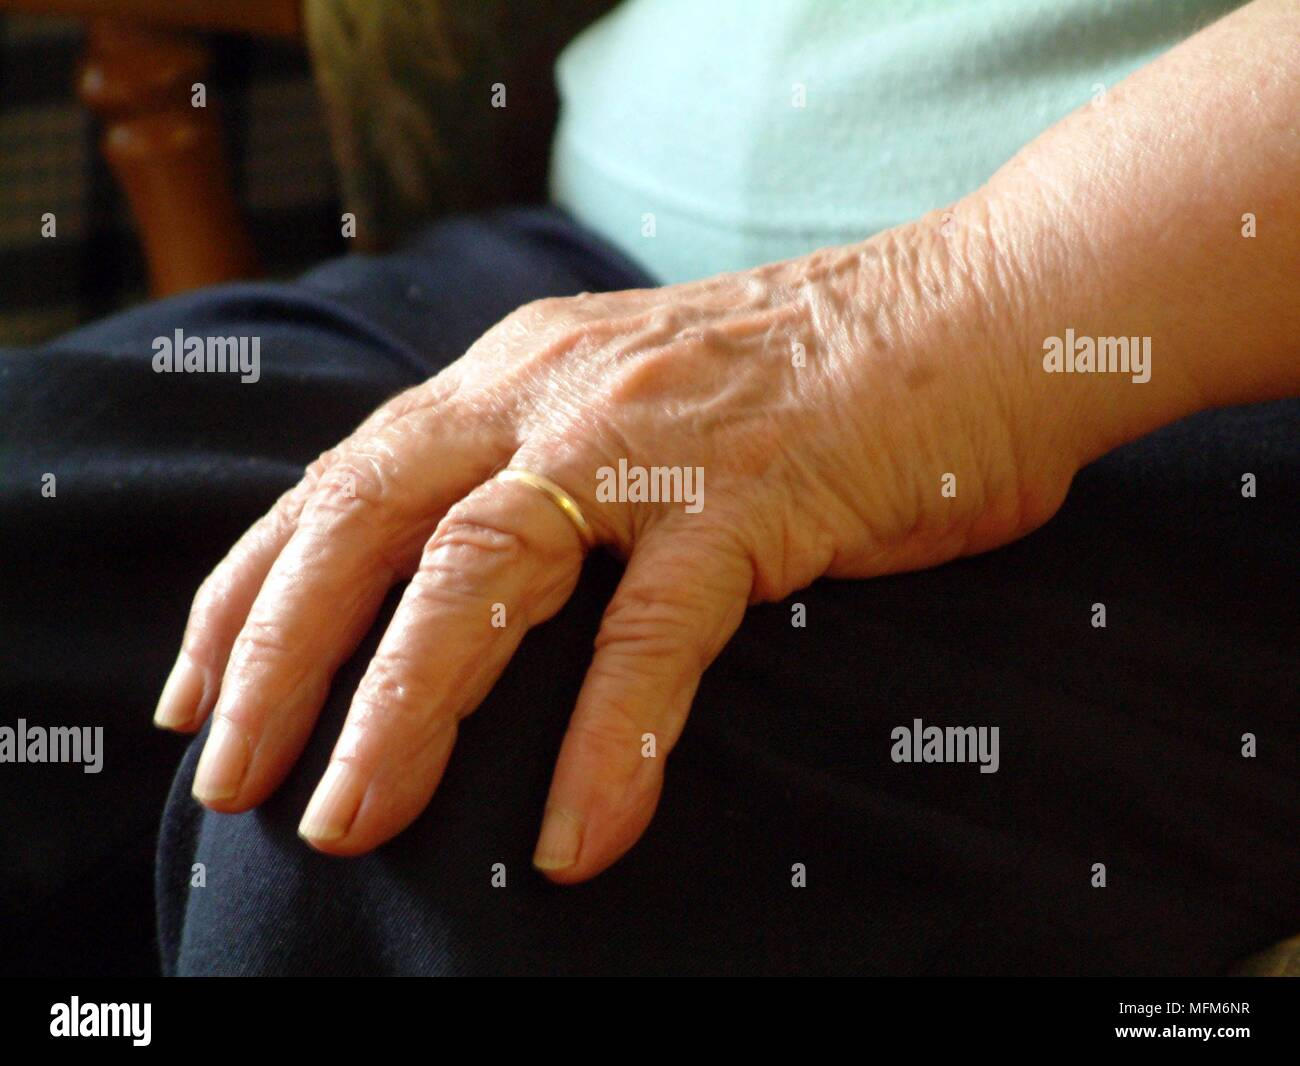 Hand Of An Old Woman Resting On Her Knee On Her Finger Is Her Gold